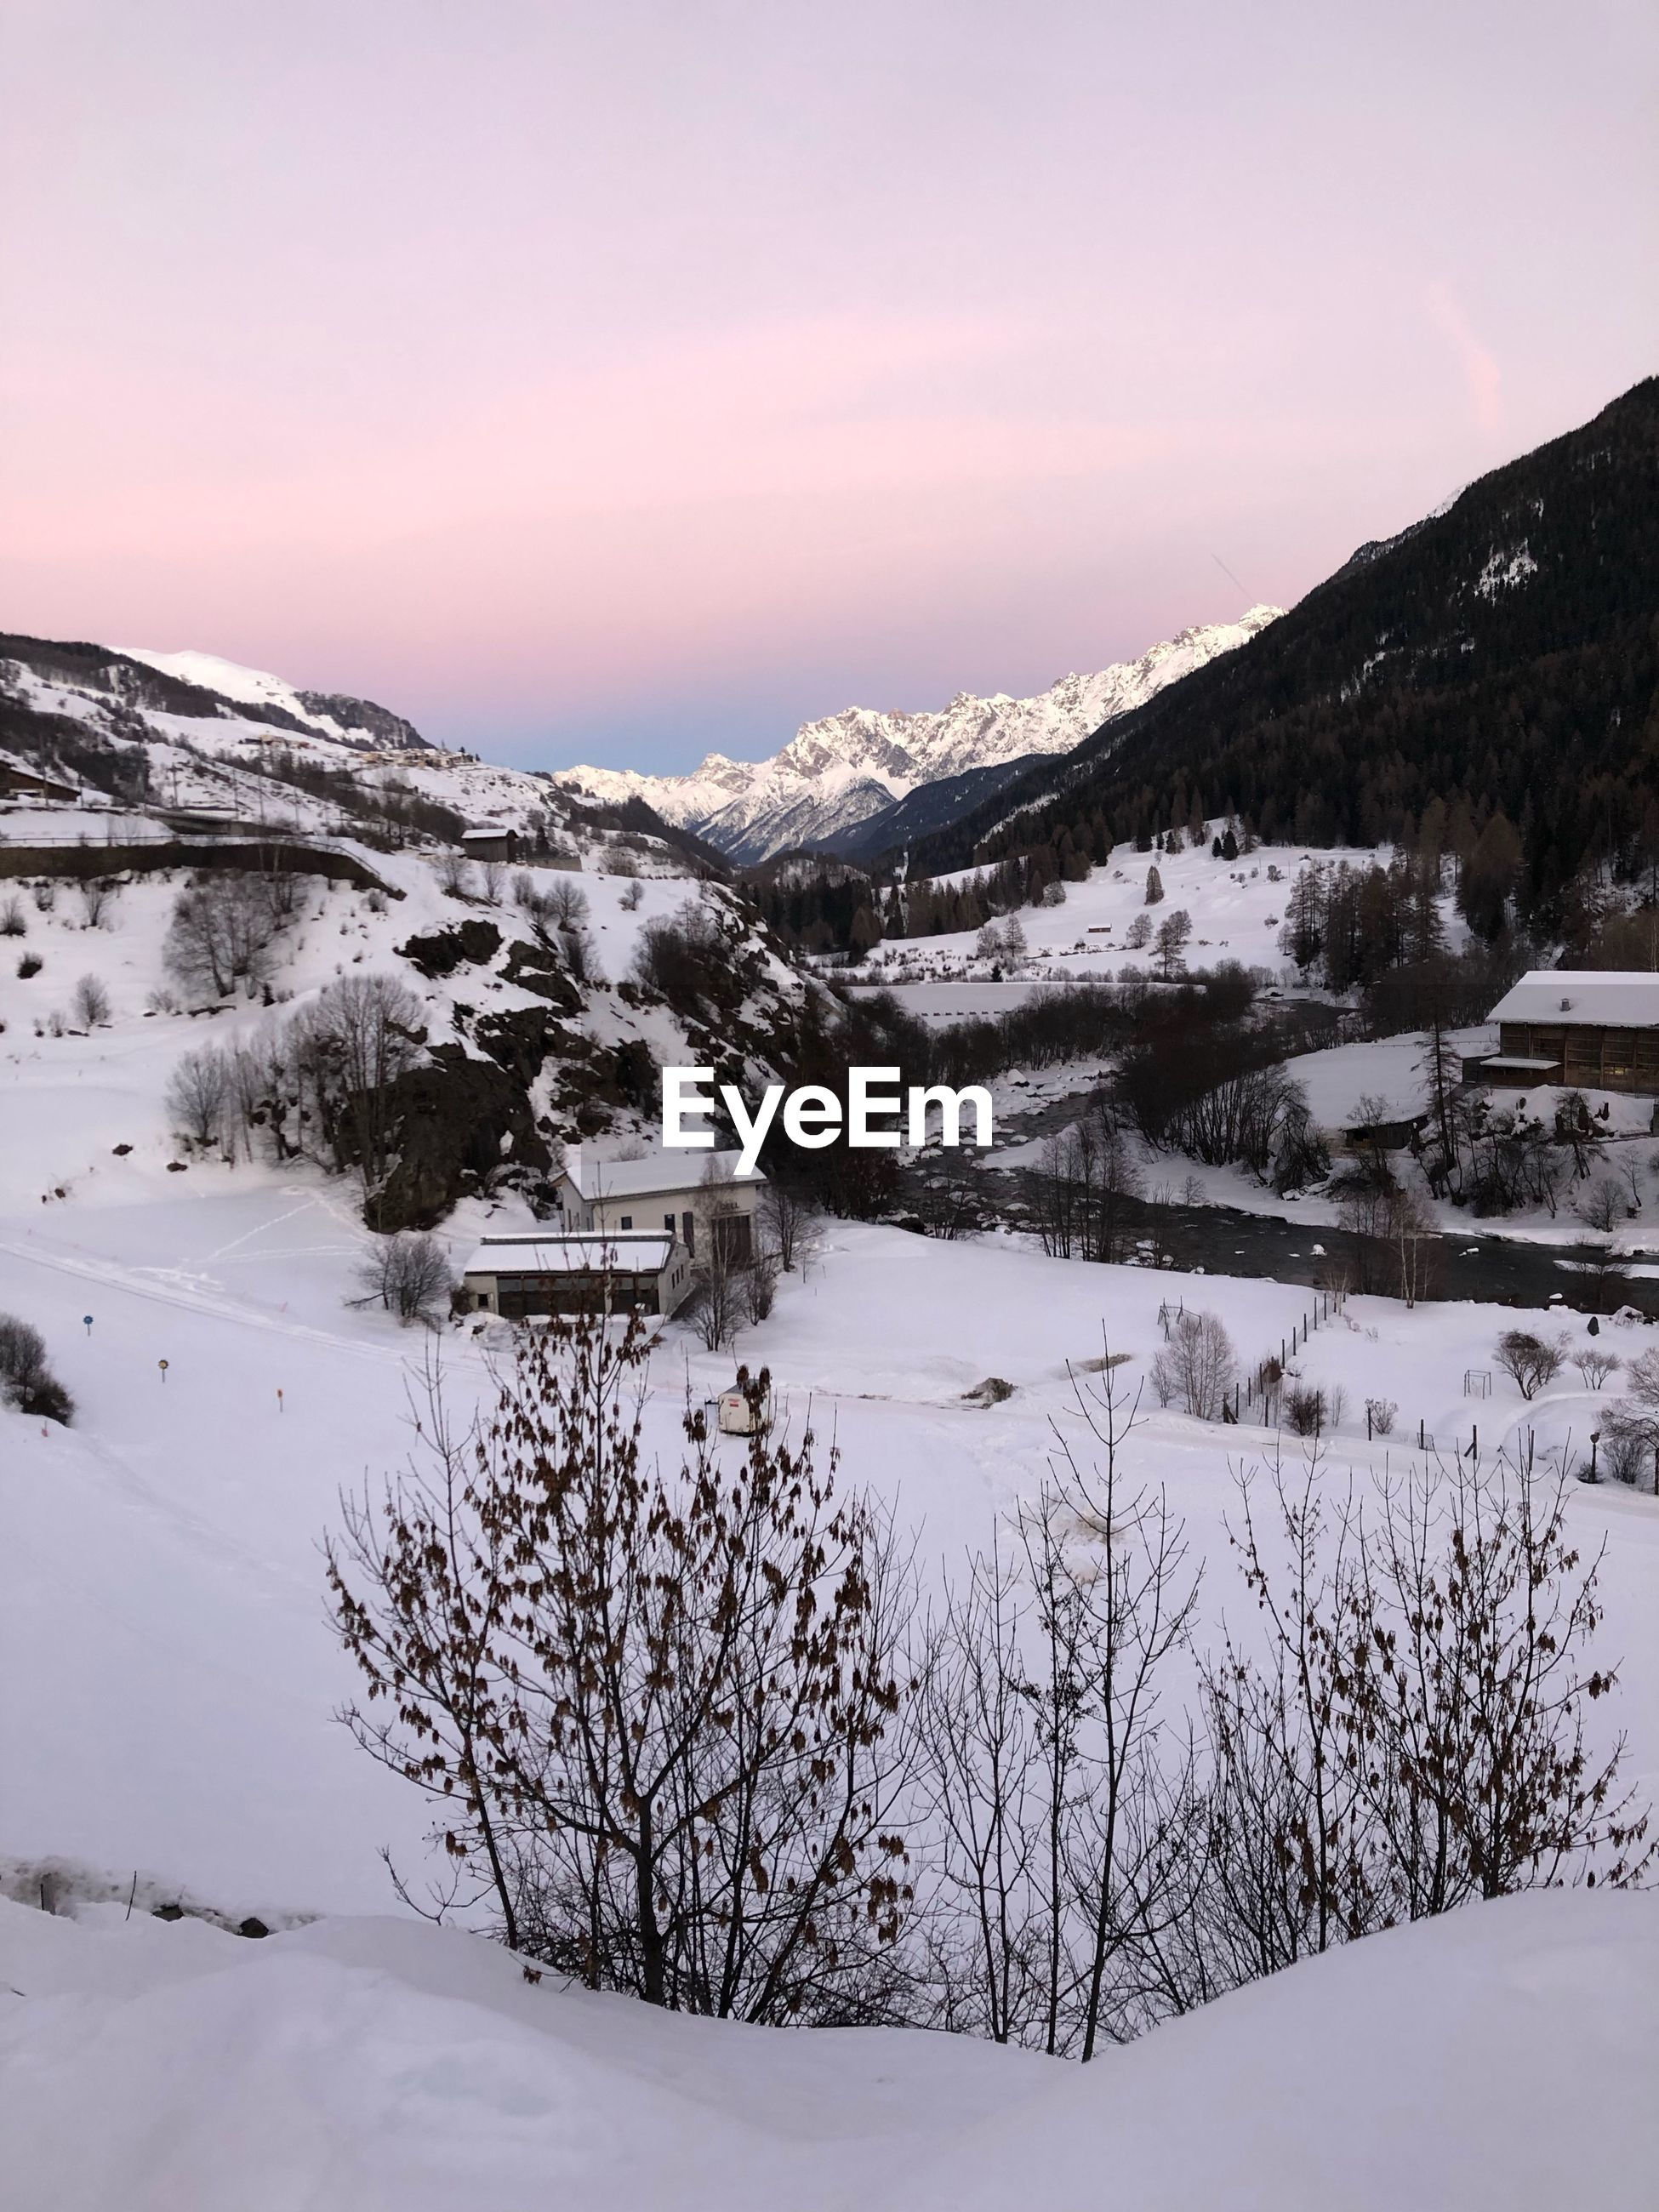 SCENIC VIEW OF SNOW COVERED MOUNTAINS AGAINST SKY DURING WINTER